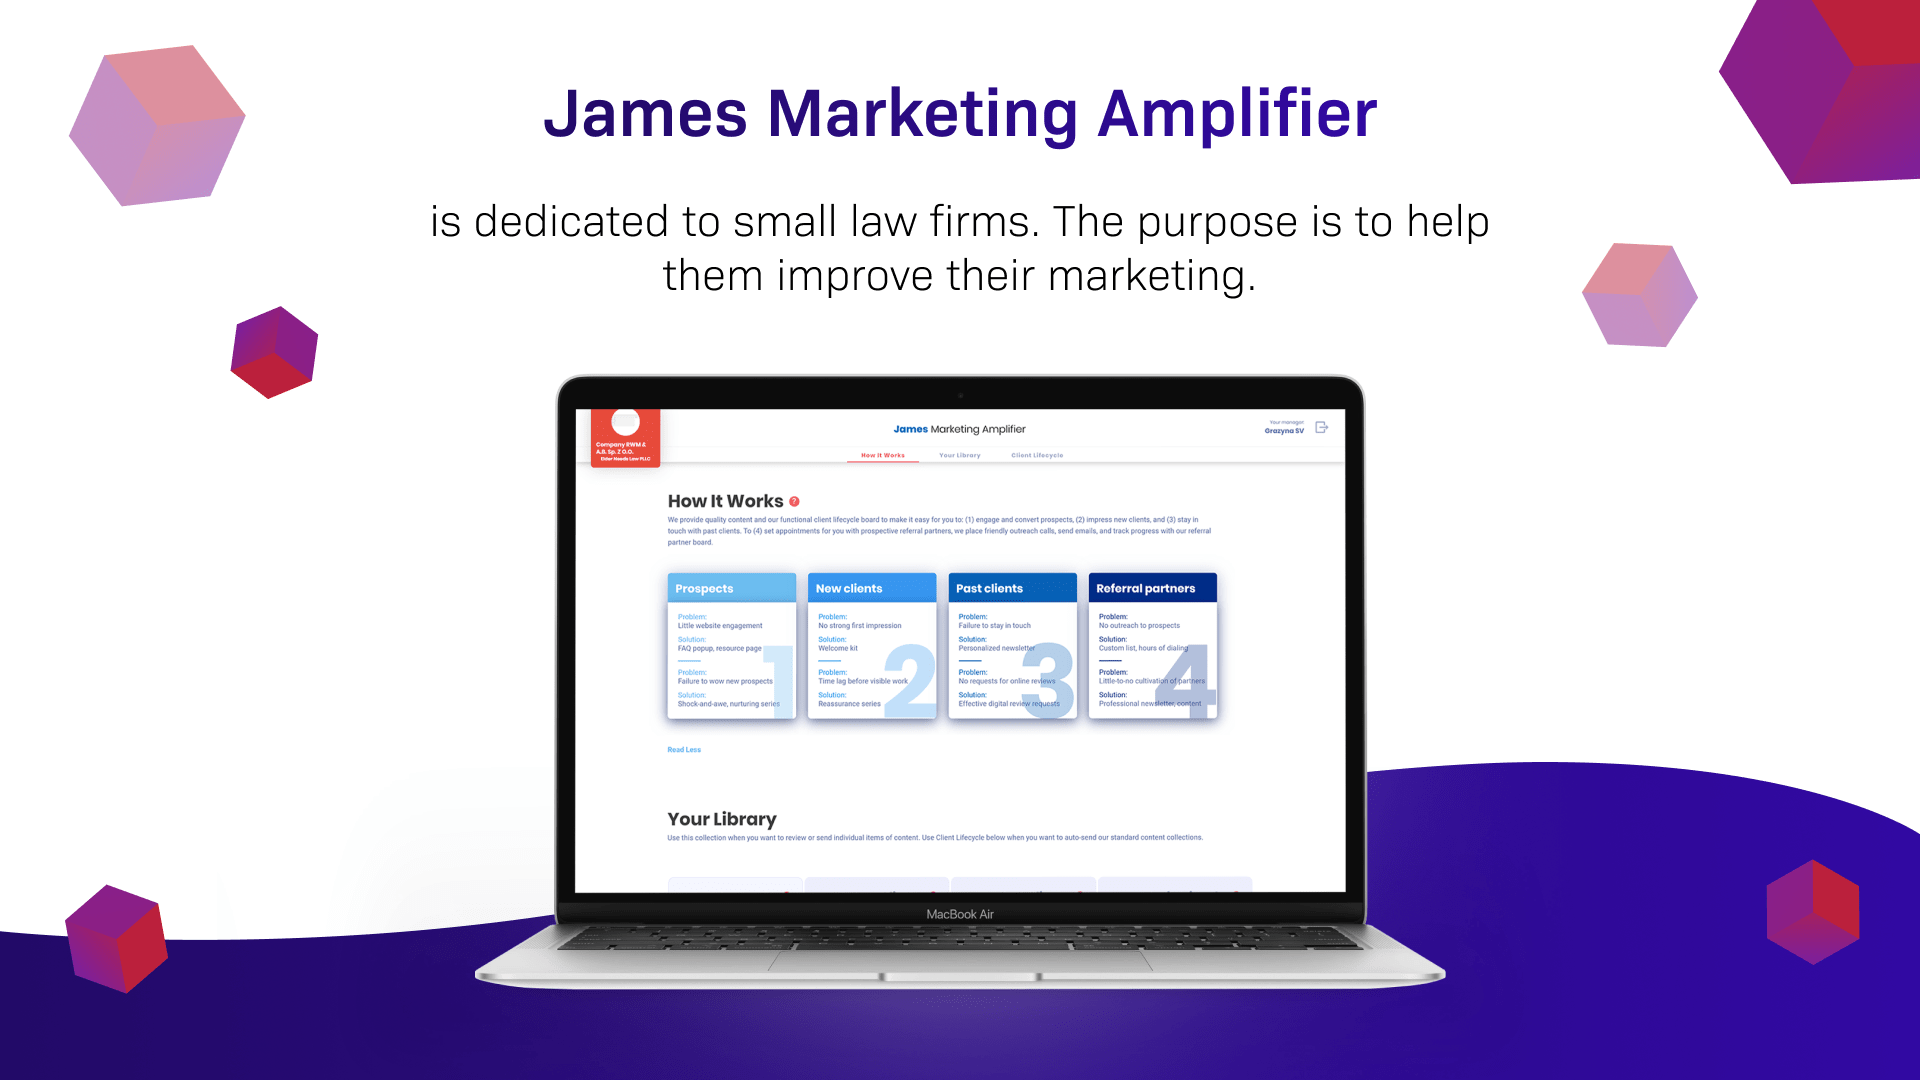 Case Study: James Marketing Amplifier